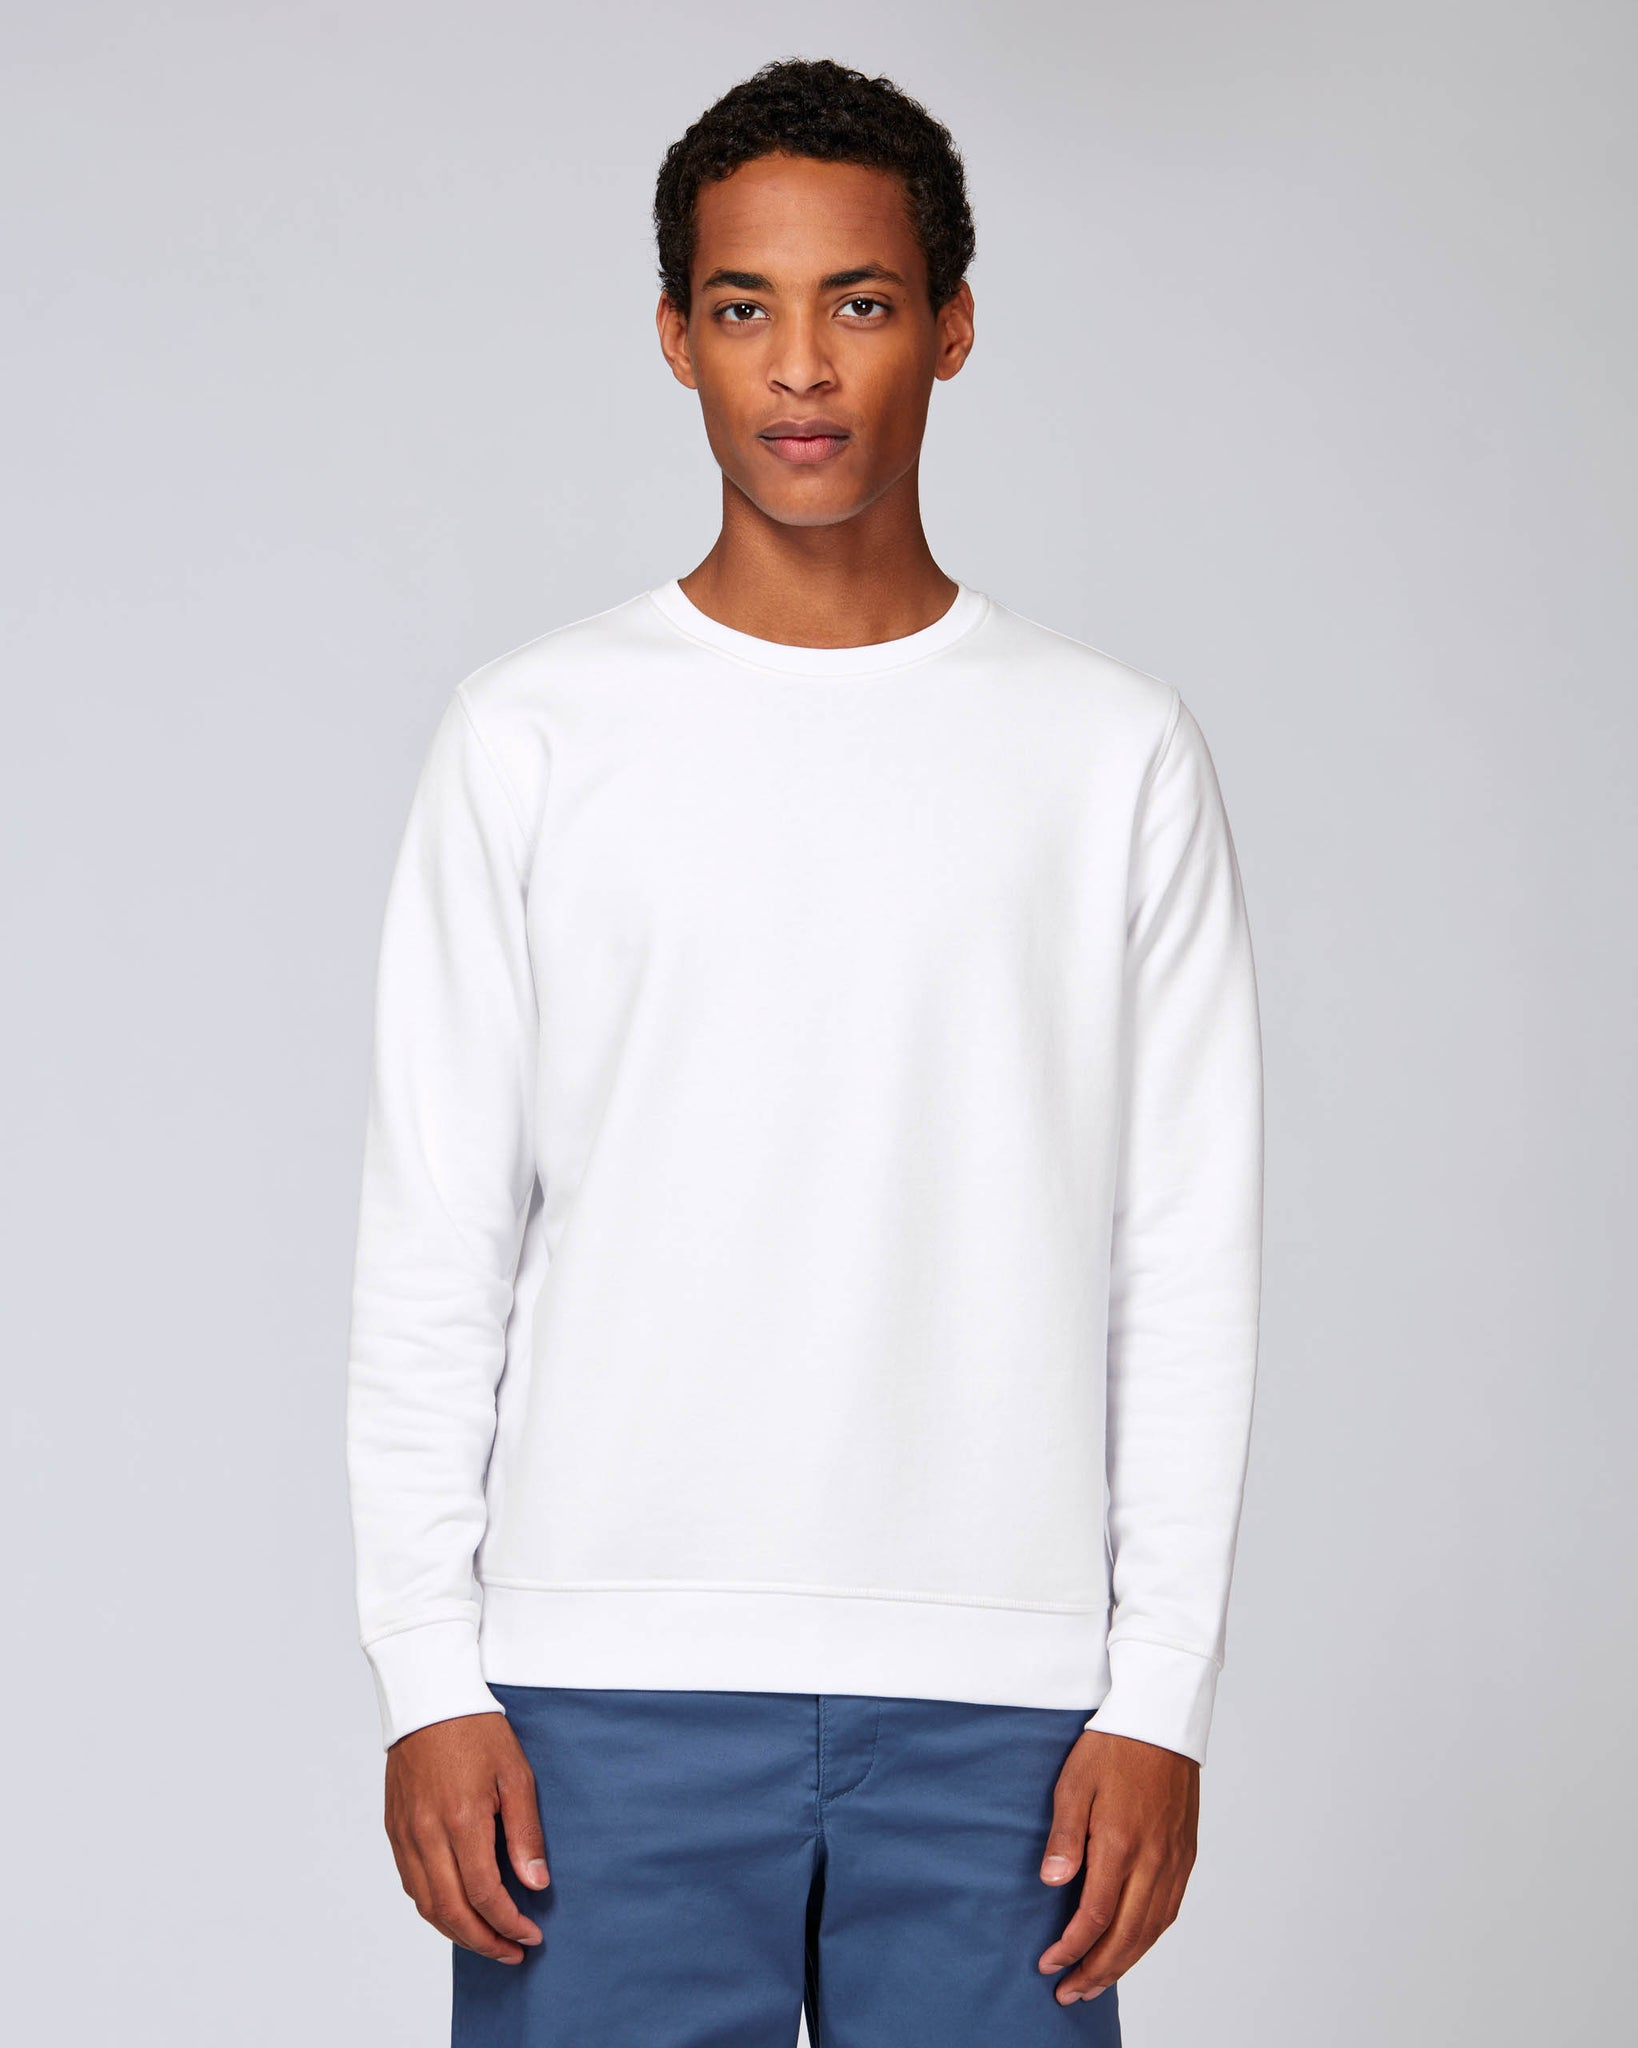 sweat shirt blanc